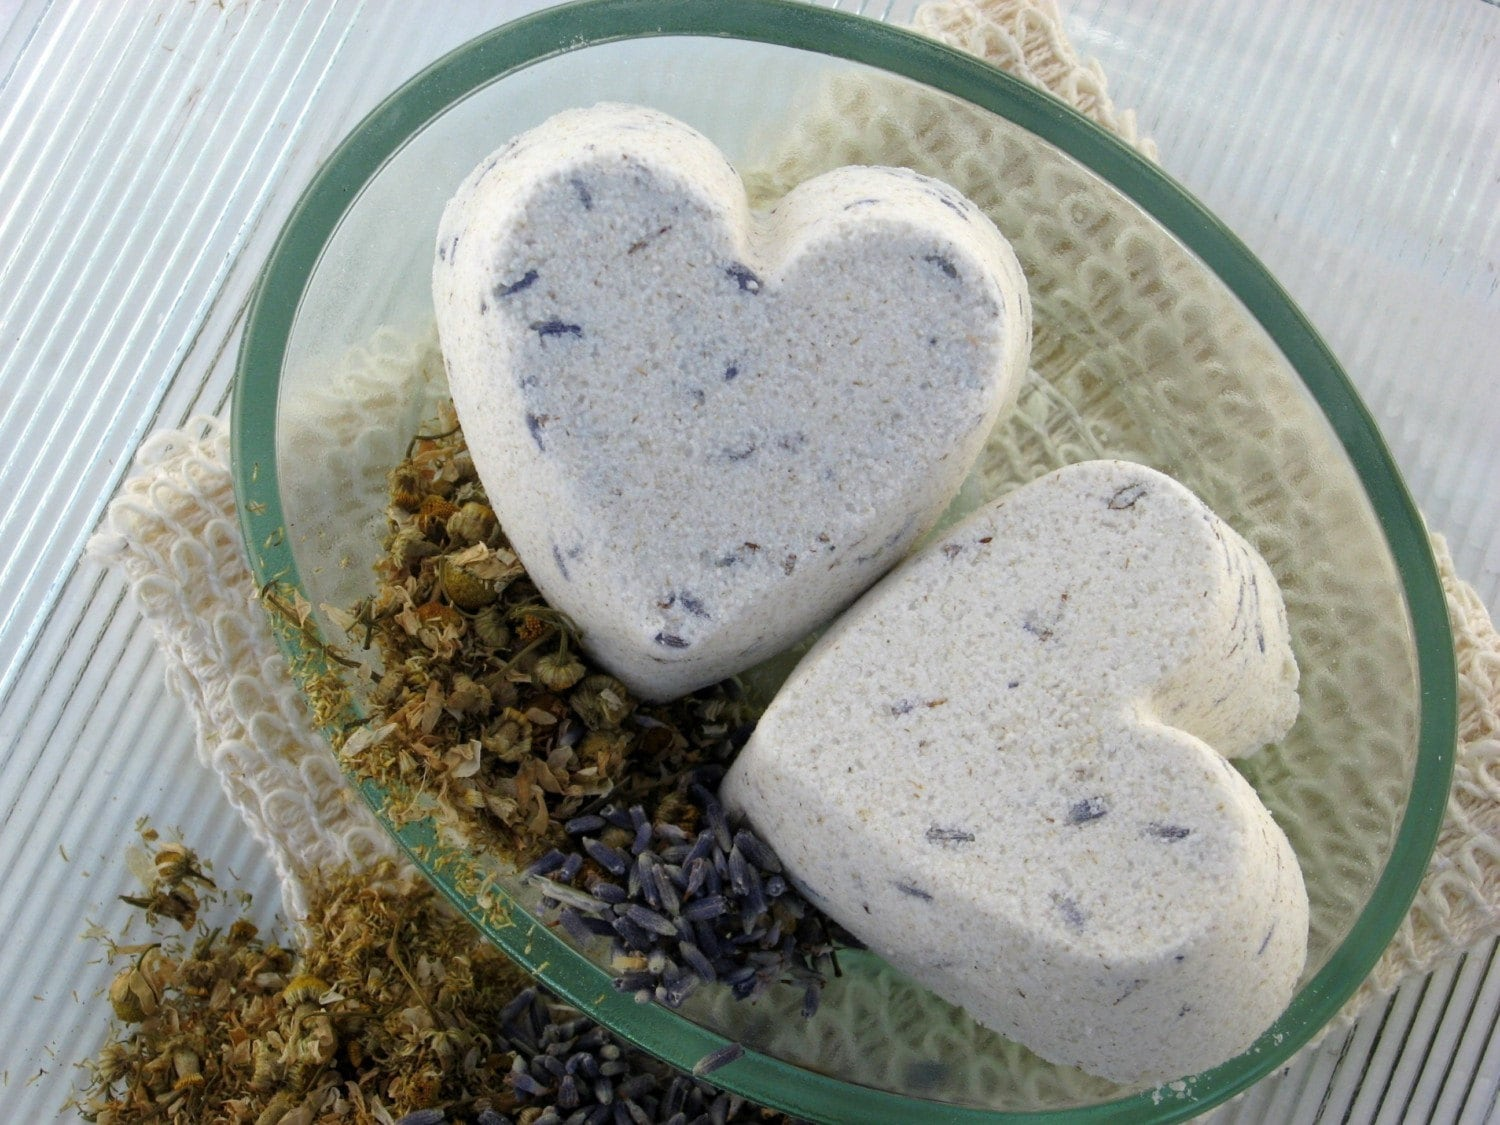 Lavender and Chamomile Heart Shaped Bath Bombs